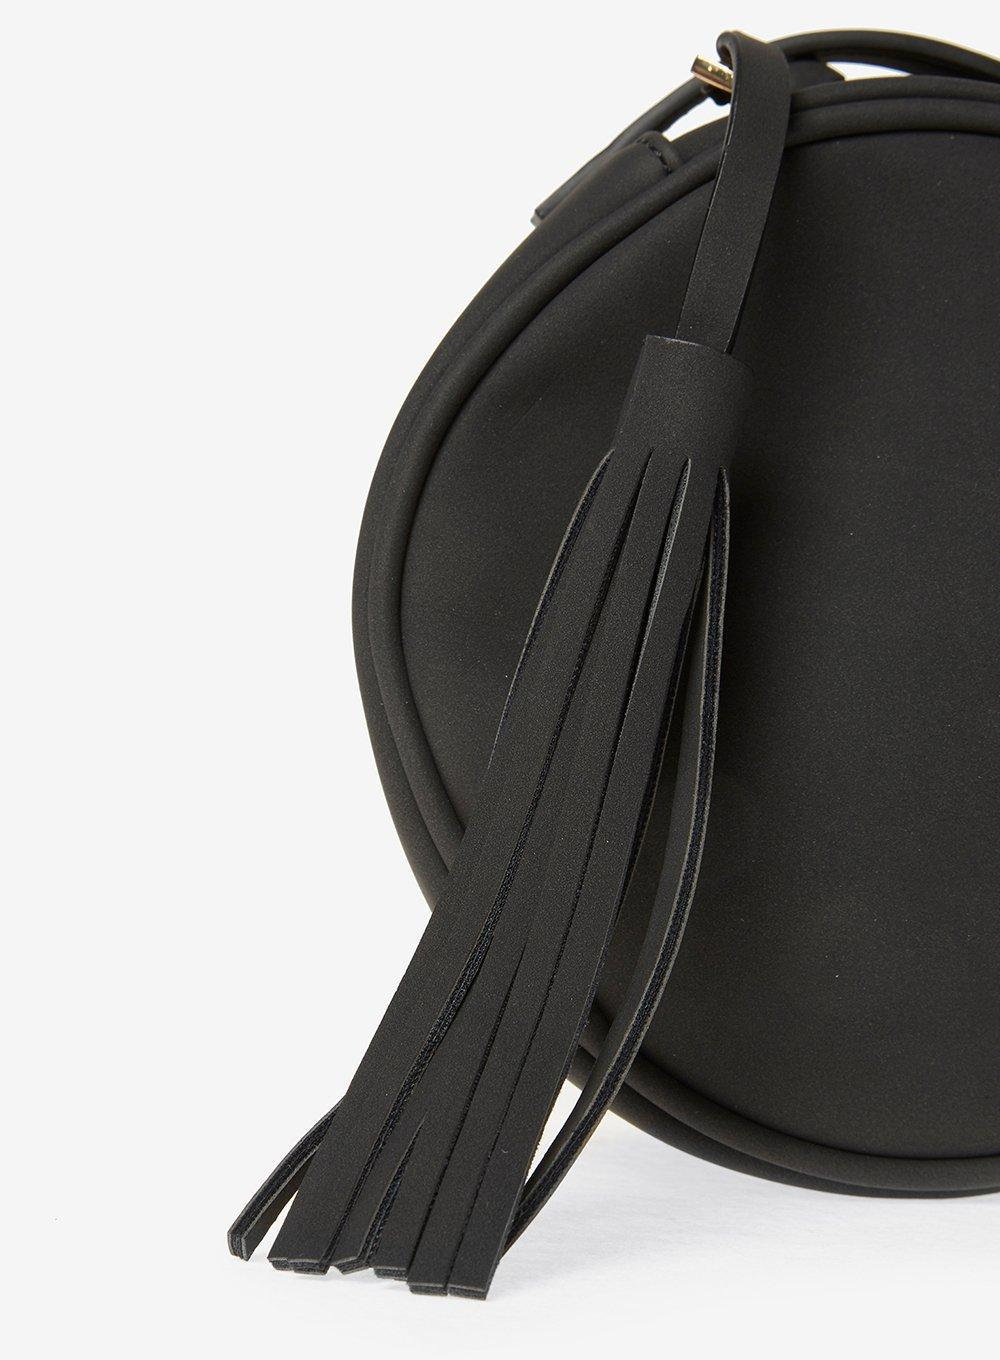 Dorothy Perkins Pieces Black Circle Cross Body Bag